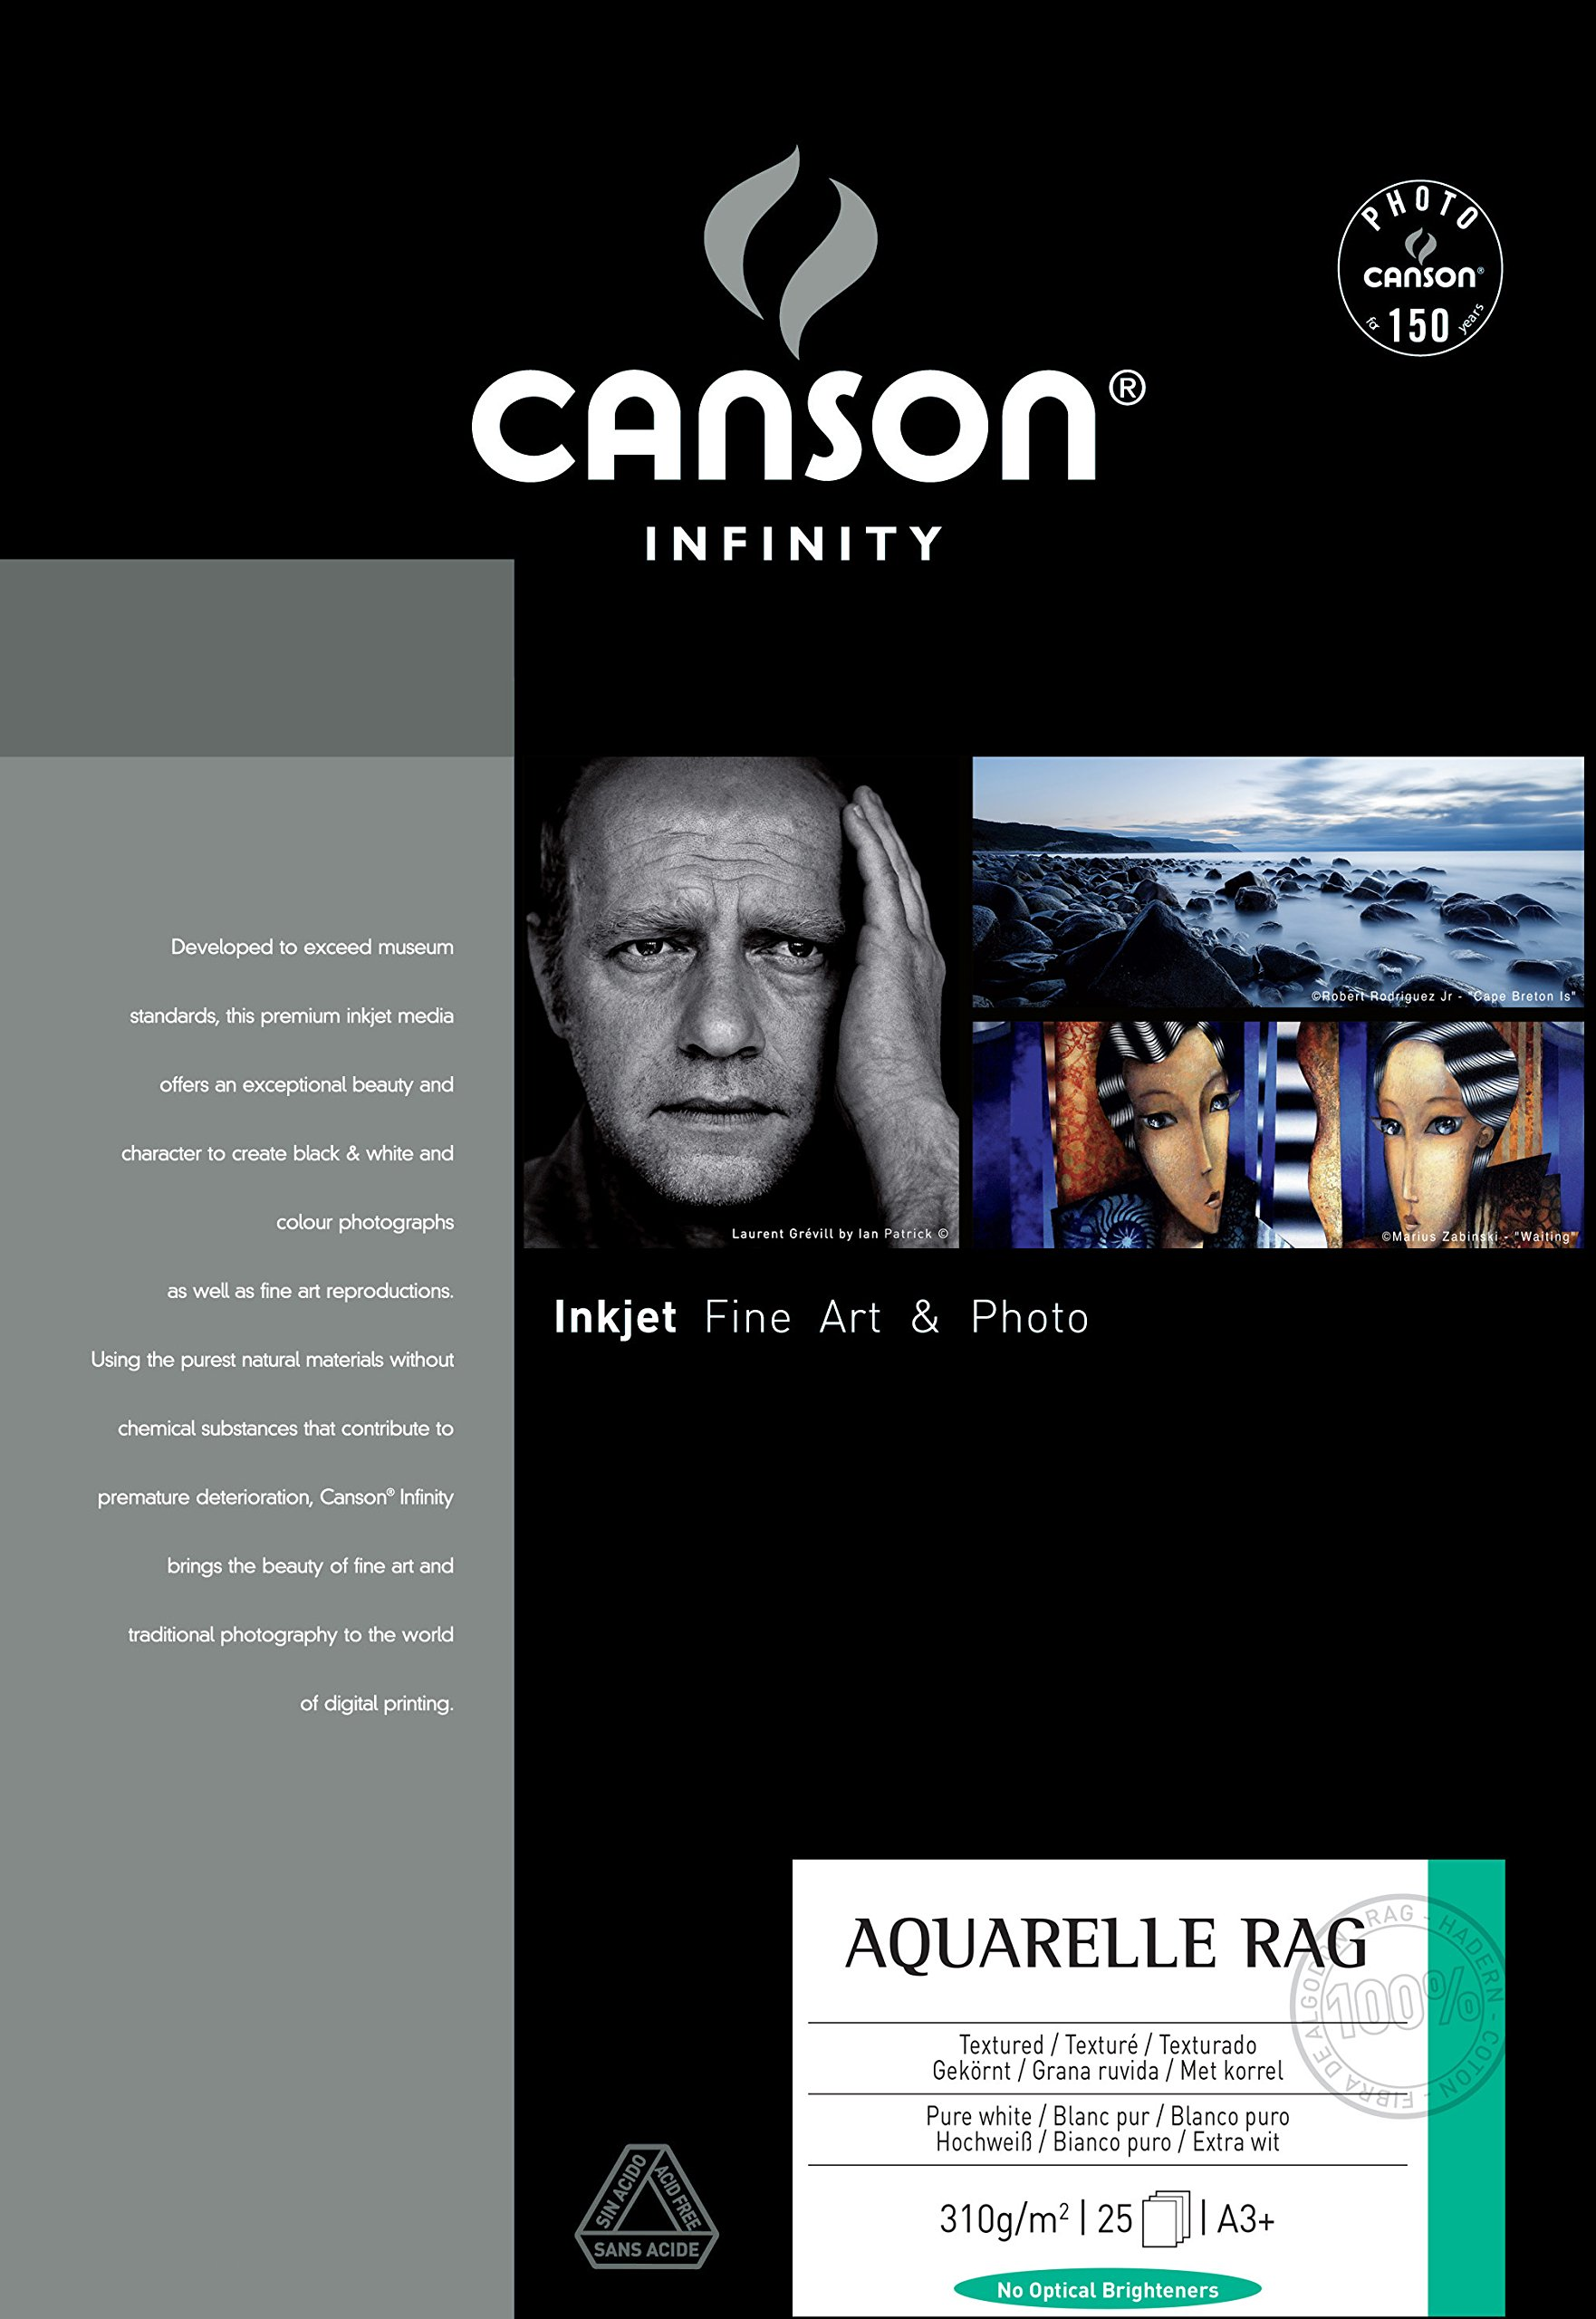 Legion Canson Infinity Digital Paper, Aquarelle Rag 310S, 13 X 19 inches, 25 Sheets A3 (F11-AQR310131925) by Canson